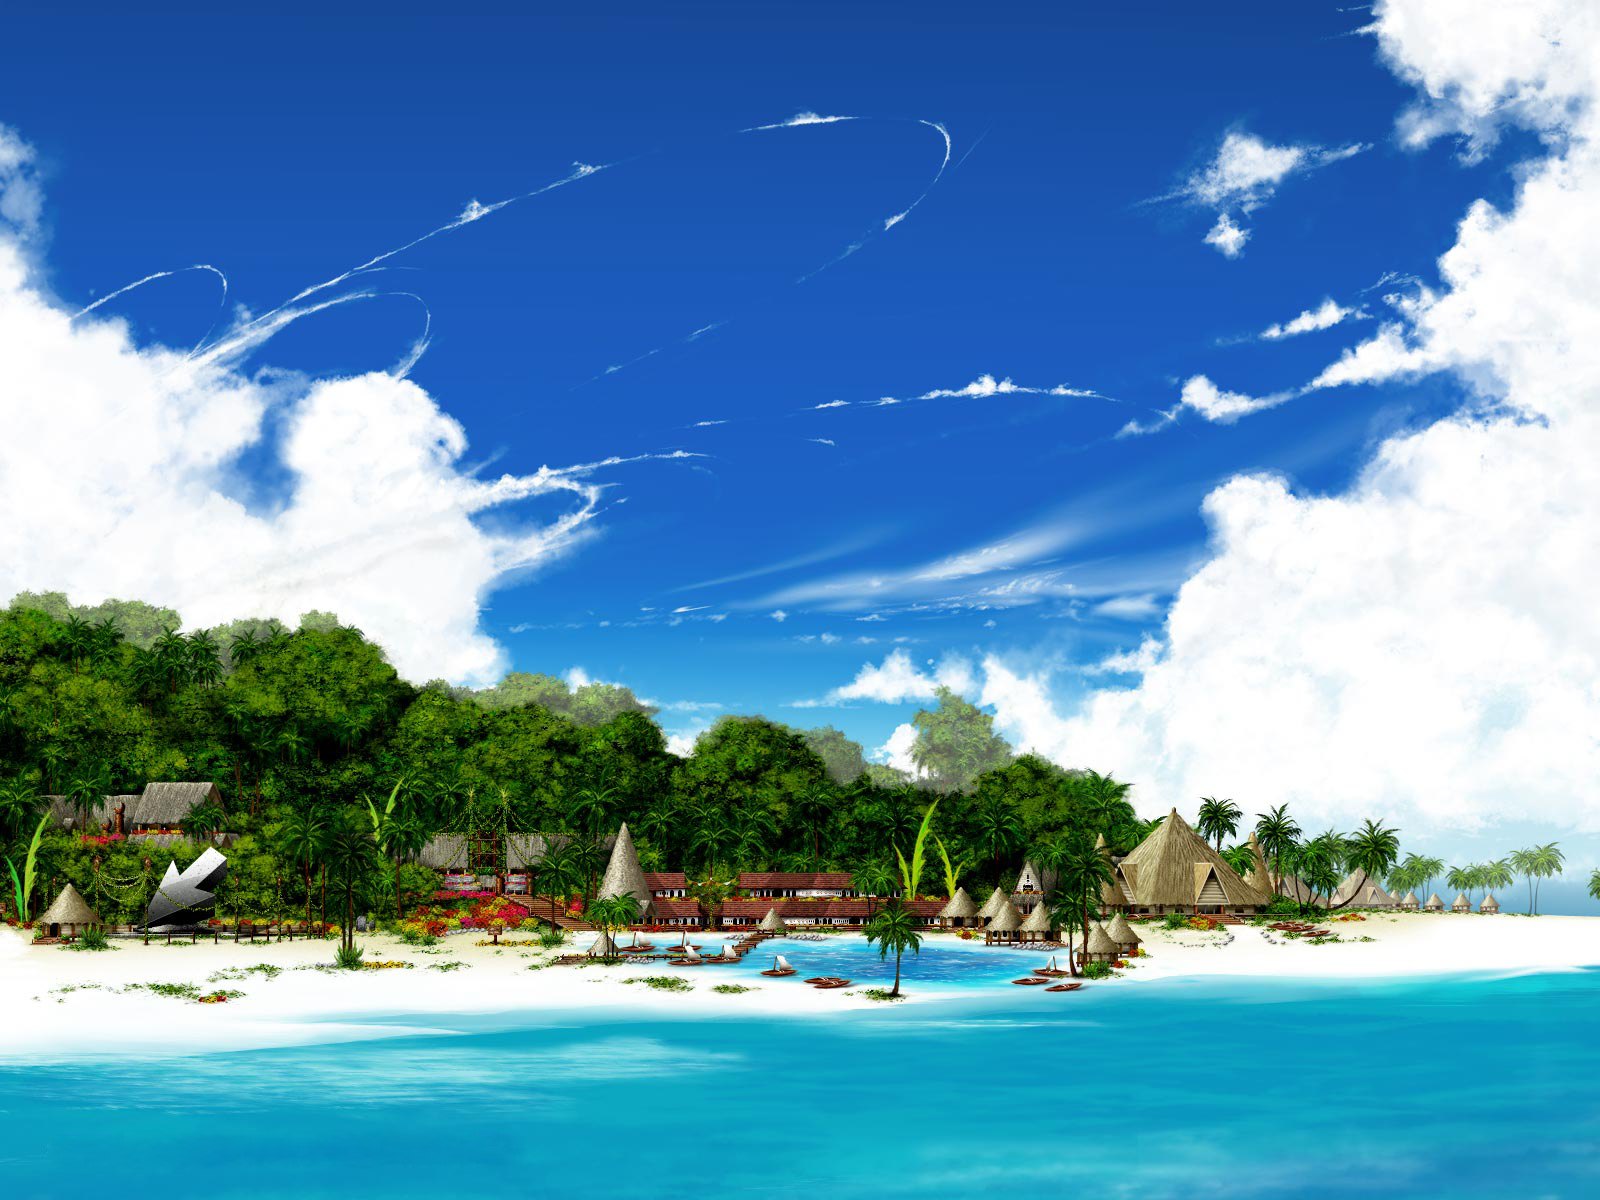 http://1.bp.blogspot.com/_RAlP3BmEW1Q/TQX4CVC1zTI/AAAAAAAACOc/_DaUIWesJvQ/s1600/The-best-top-summer-desktop-wallpapers-22.jpg